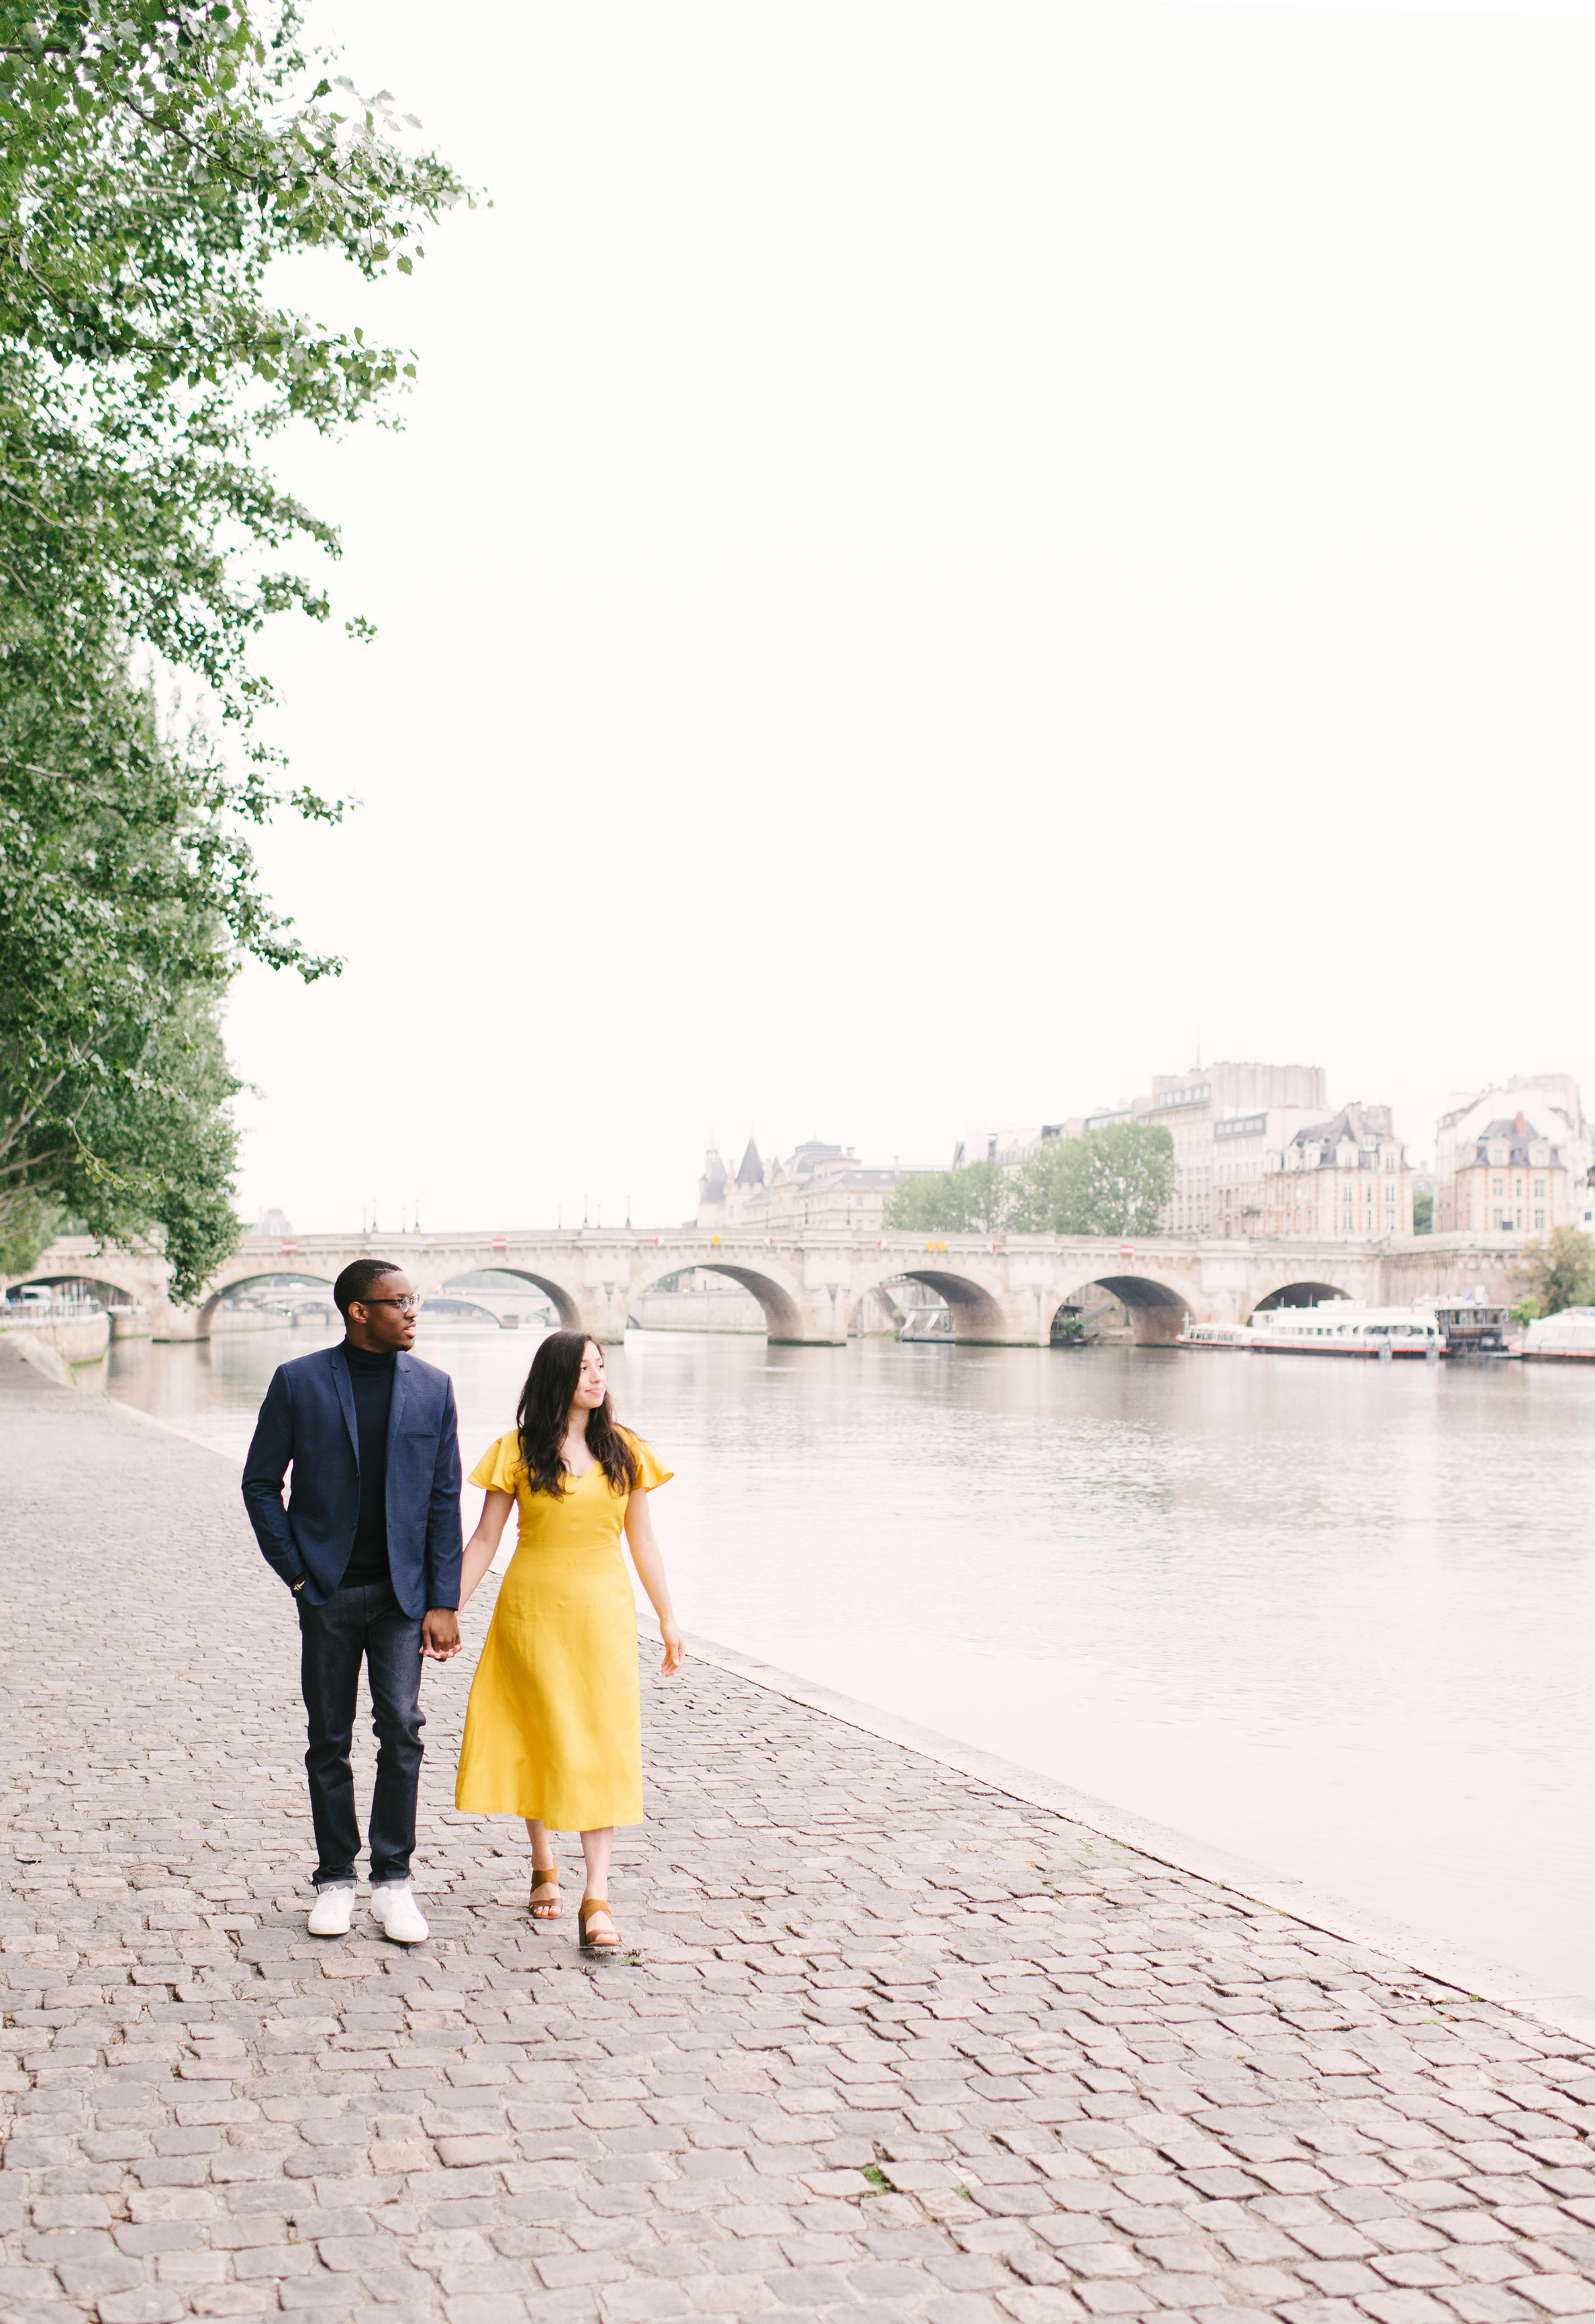 Couple-photoshoot-Paris-Pont-des-arts-Louvre-PalaisRoyale-008.jpg